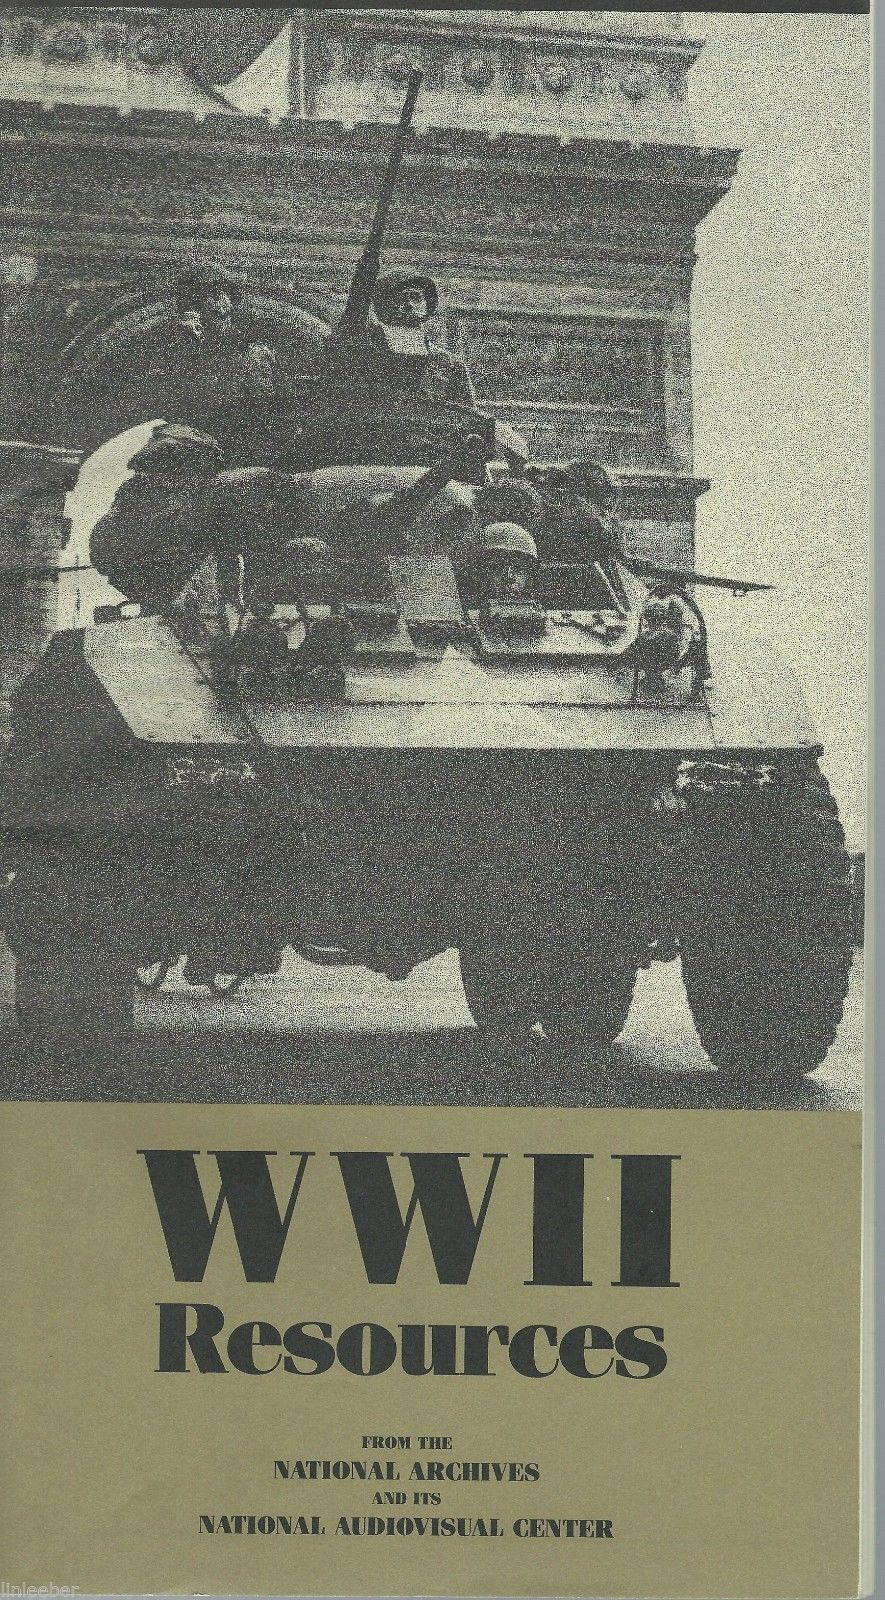 WW II Resources From The National Archives And Its National Audiovisual Center